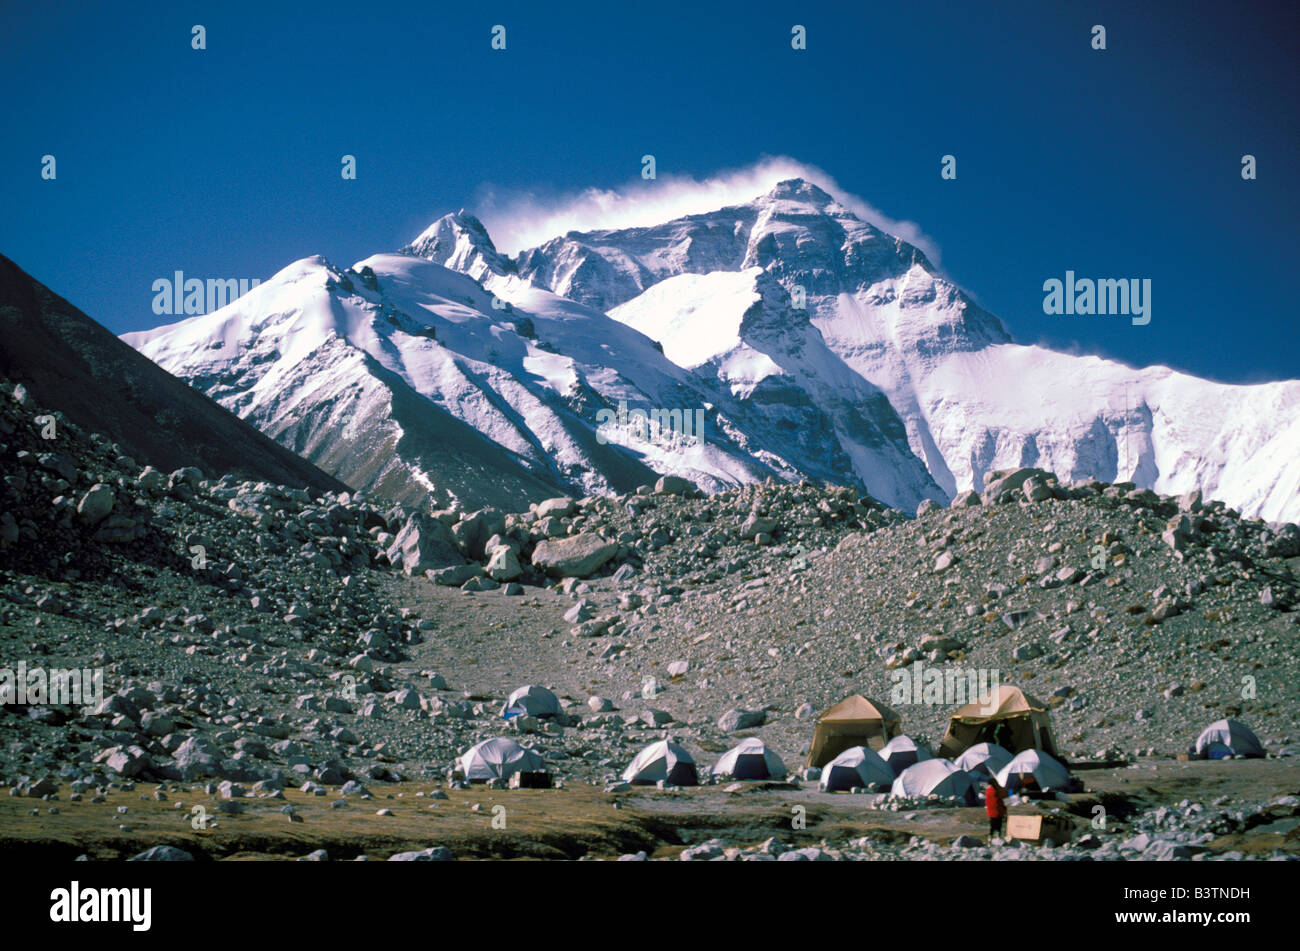 Tibet. Mt. Everest phase camp. - Stock Image